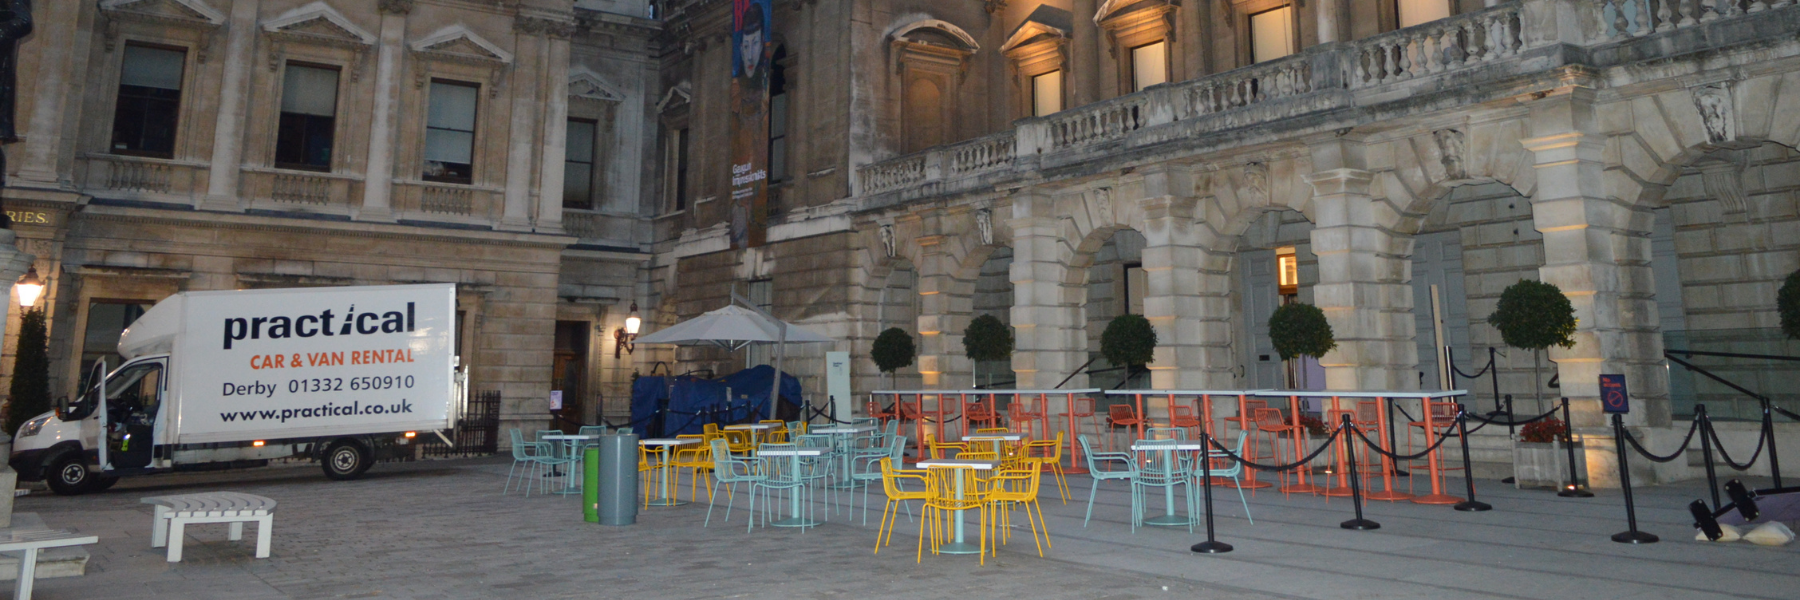 Picasso and Parasols wowed guests at the Royal Academy of Arts.